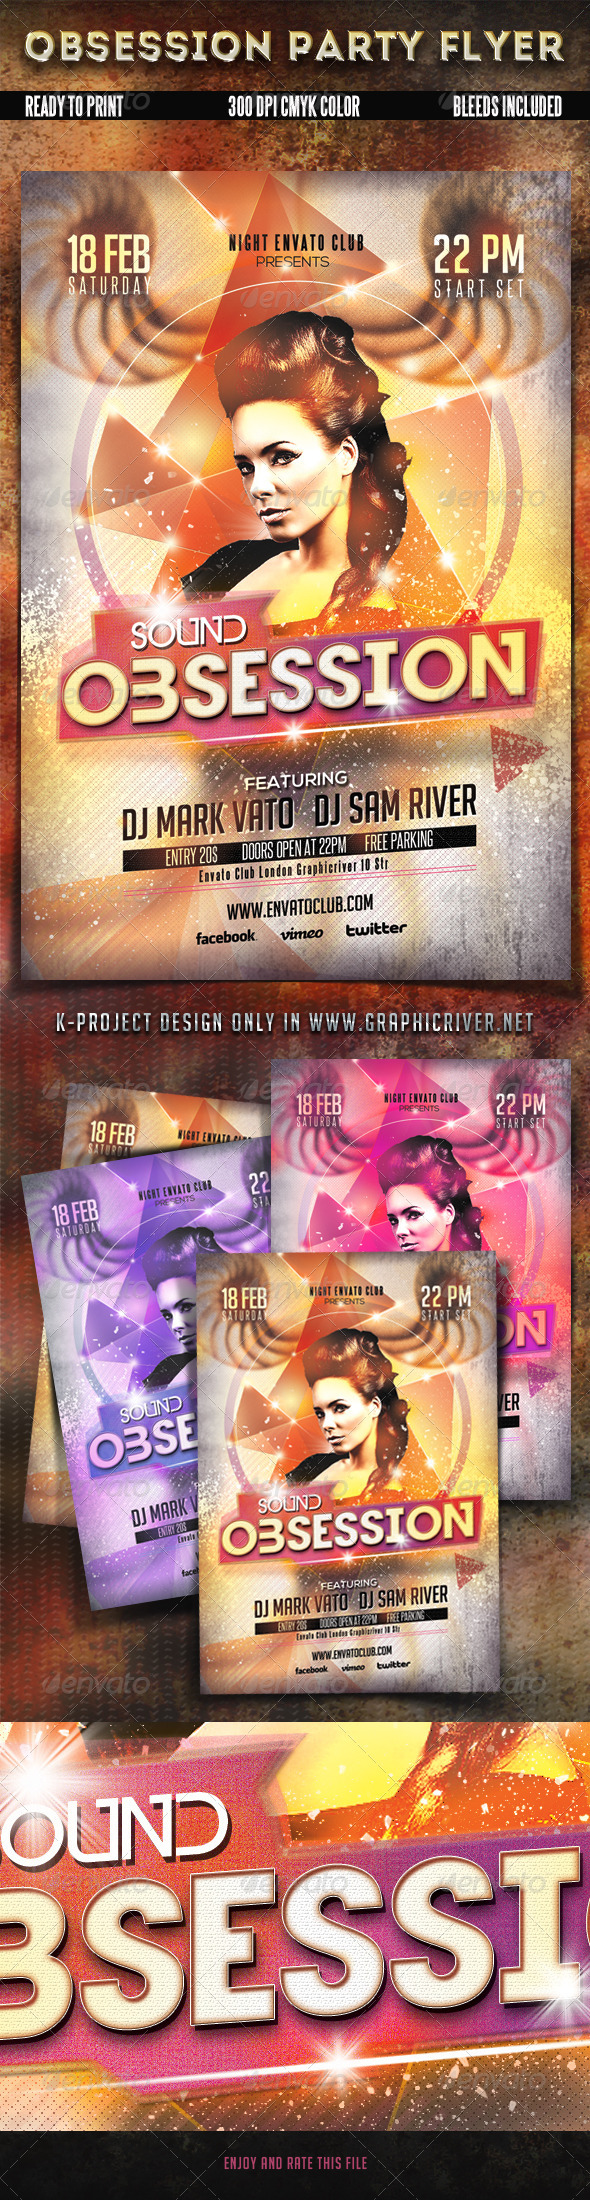 GraphicRiver Obsession Party Flyer 6474014